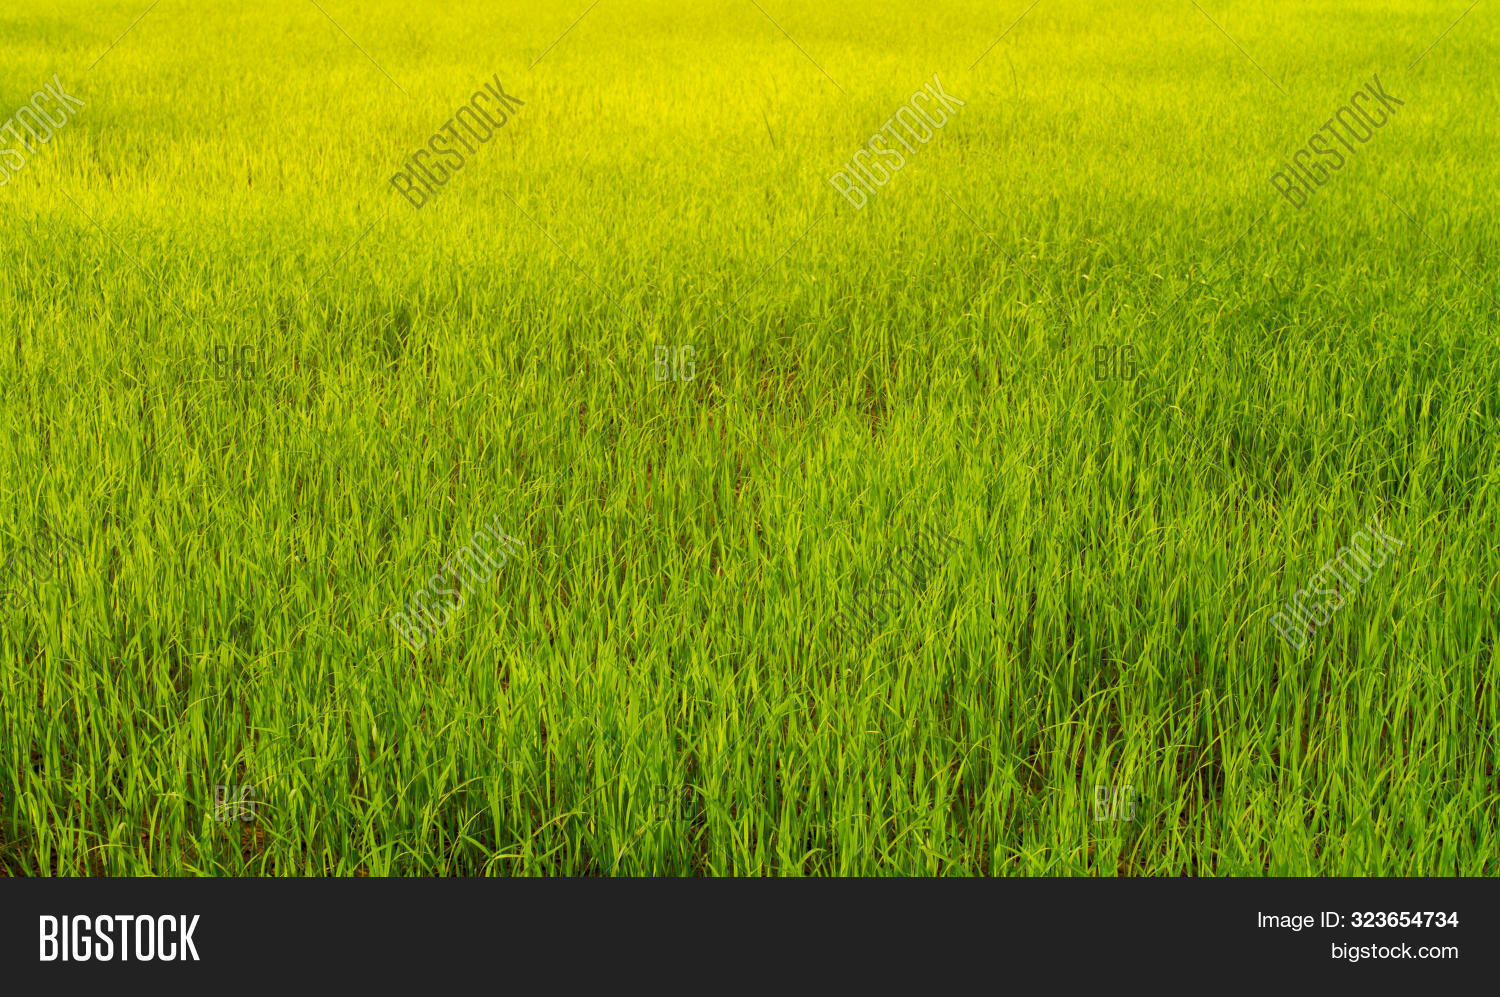 Rice Seedlings In Rice Field Green Background. Agriculture, An Organic Asian Farm. Young Growing Ric